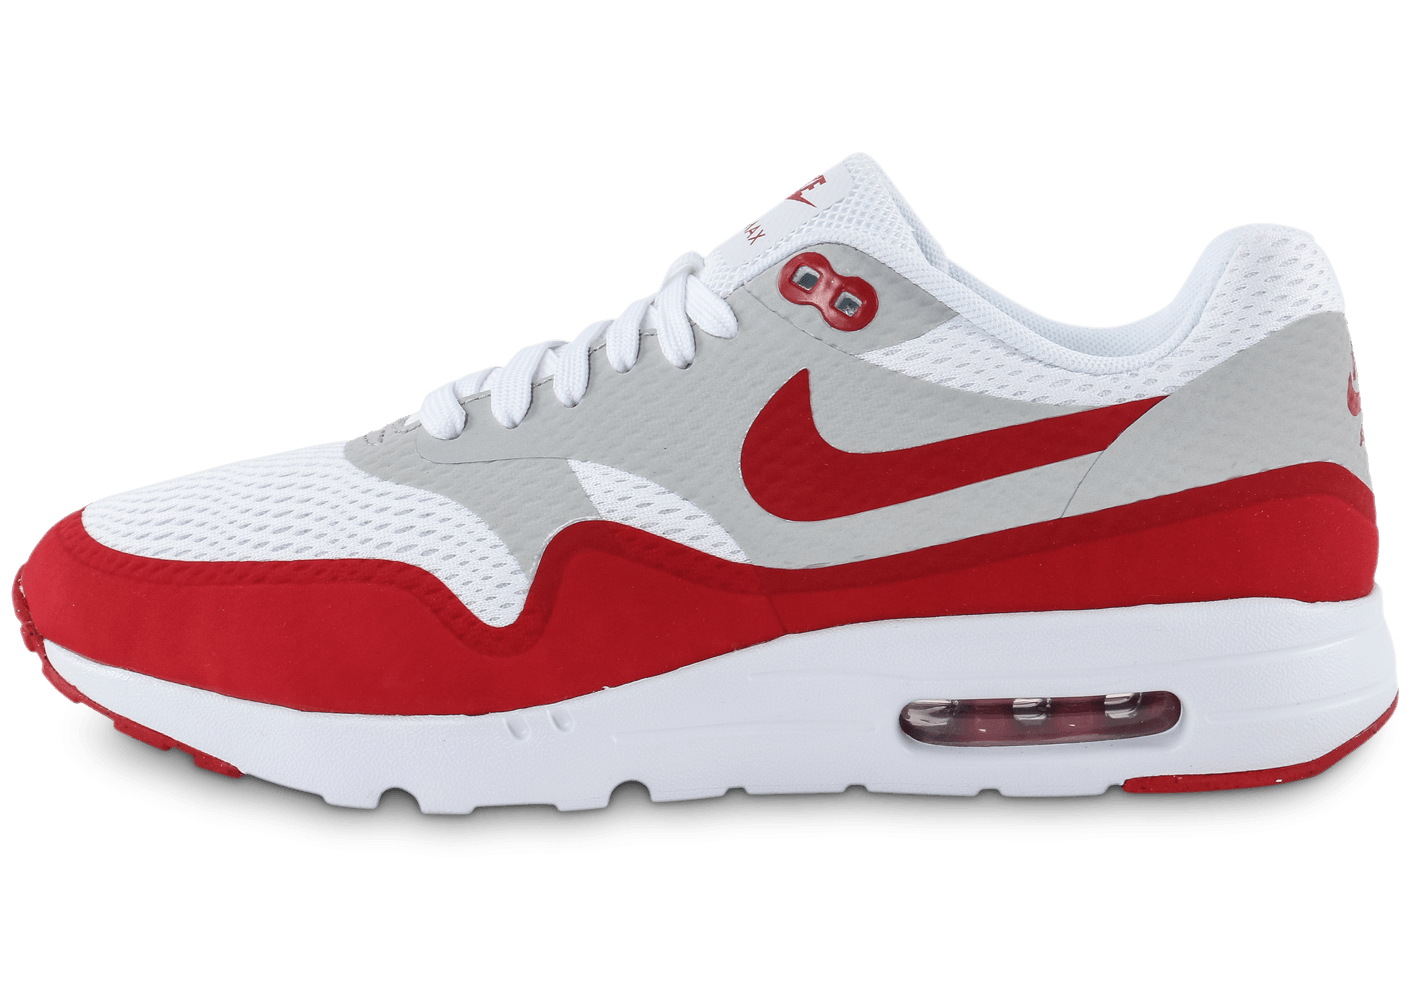 nike air max rouge blanche, Cliquez pour zoomer Chaussures Nike Air Max 1 Ultra Essential blanc rouge vue extérieure Chaussures ...